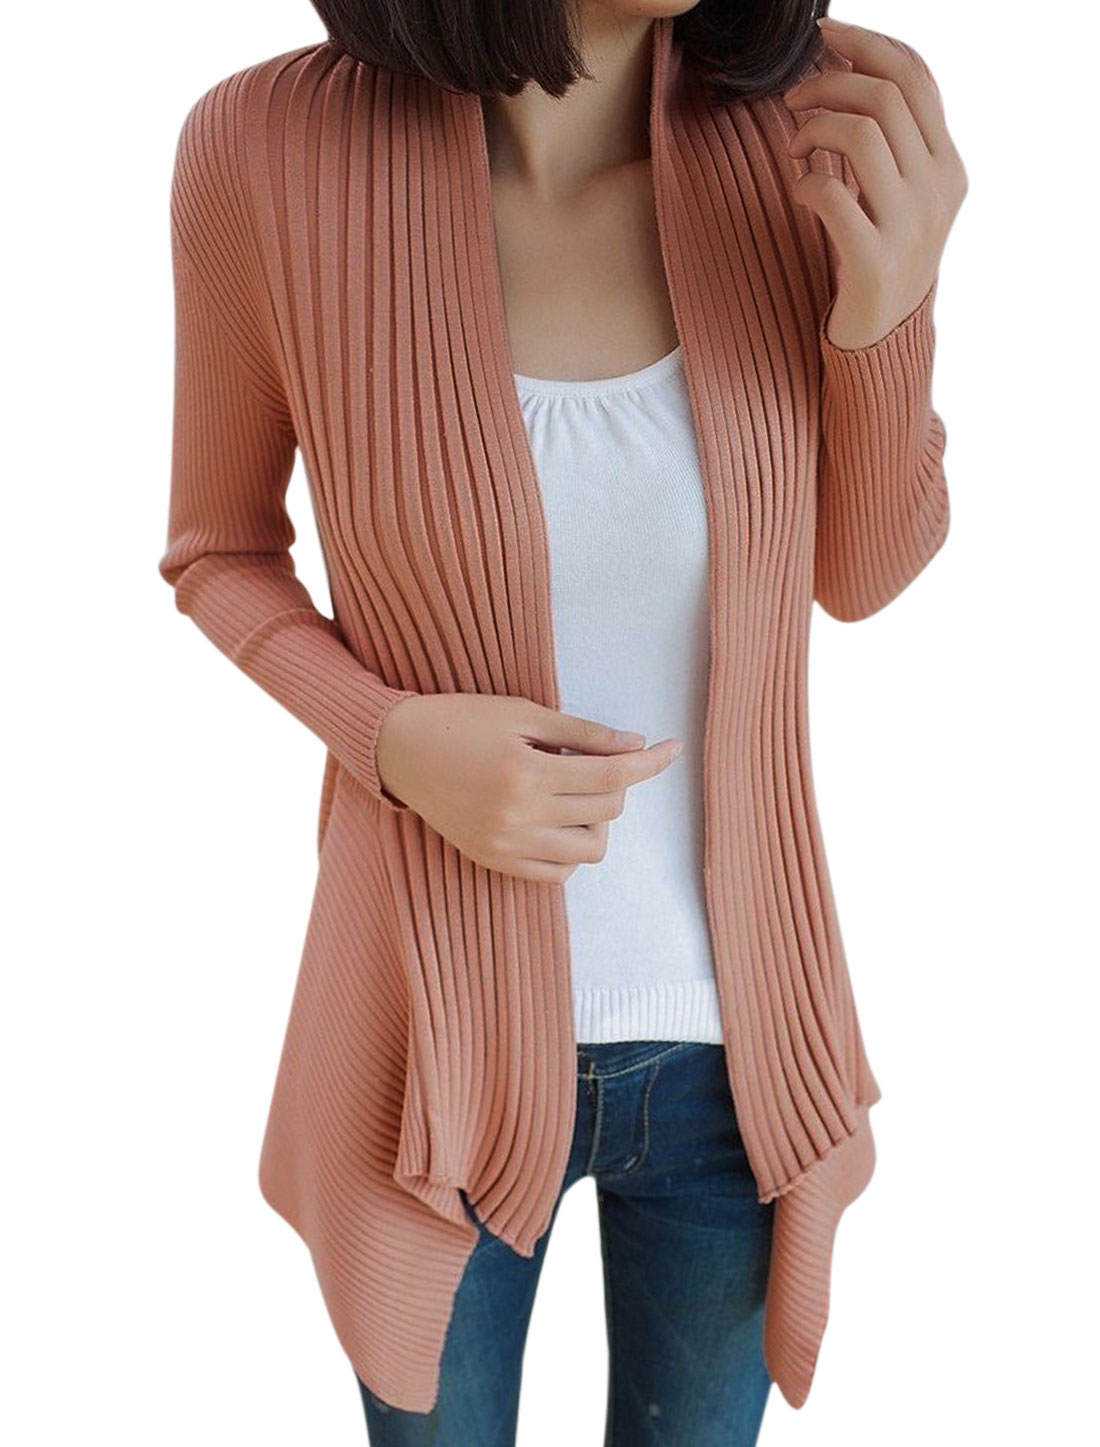 Lady Long Sleeve Open Front Cardigan Pale Pink S